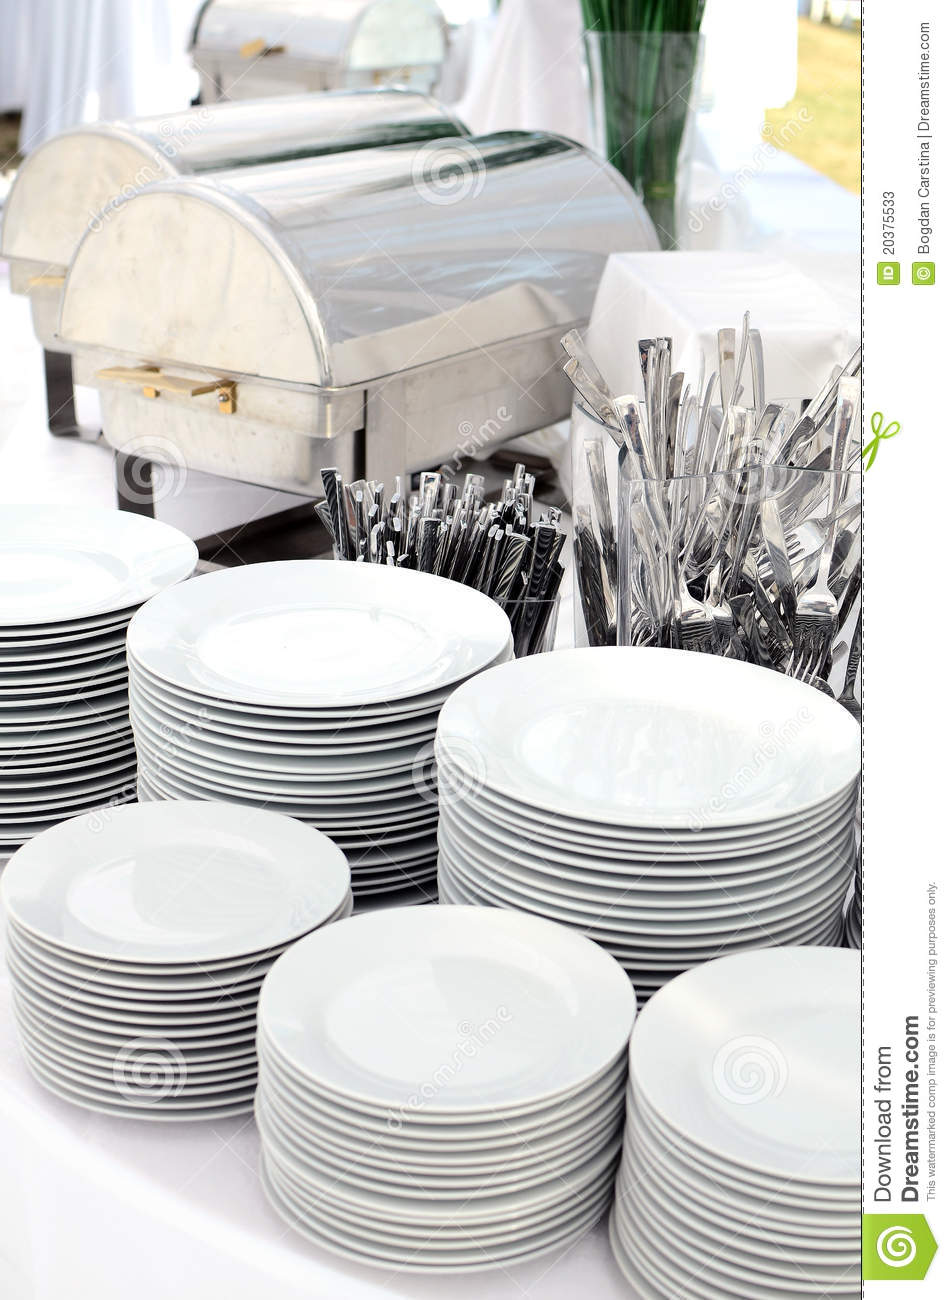 Silverware and dishware